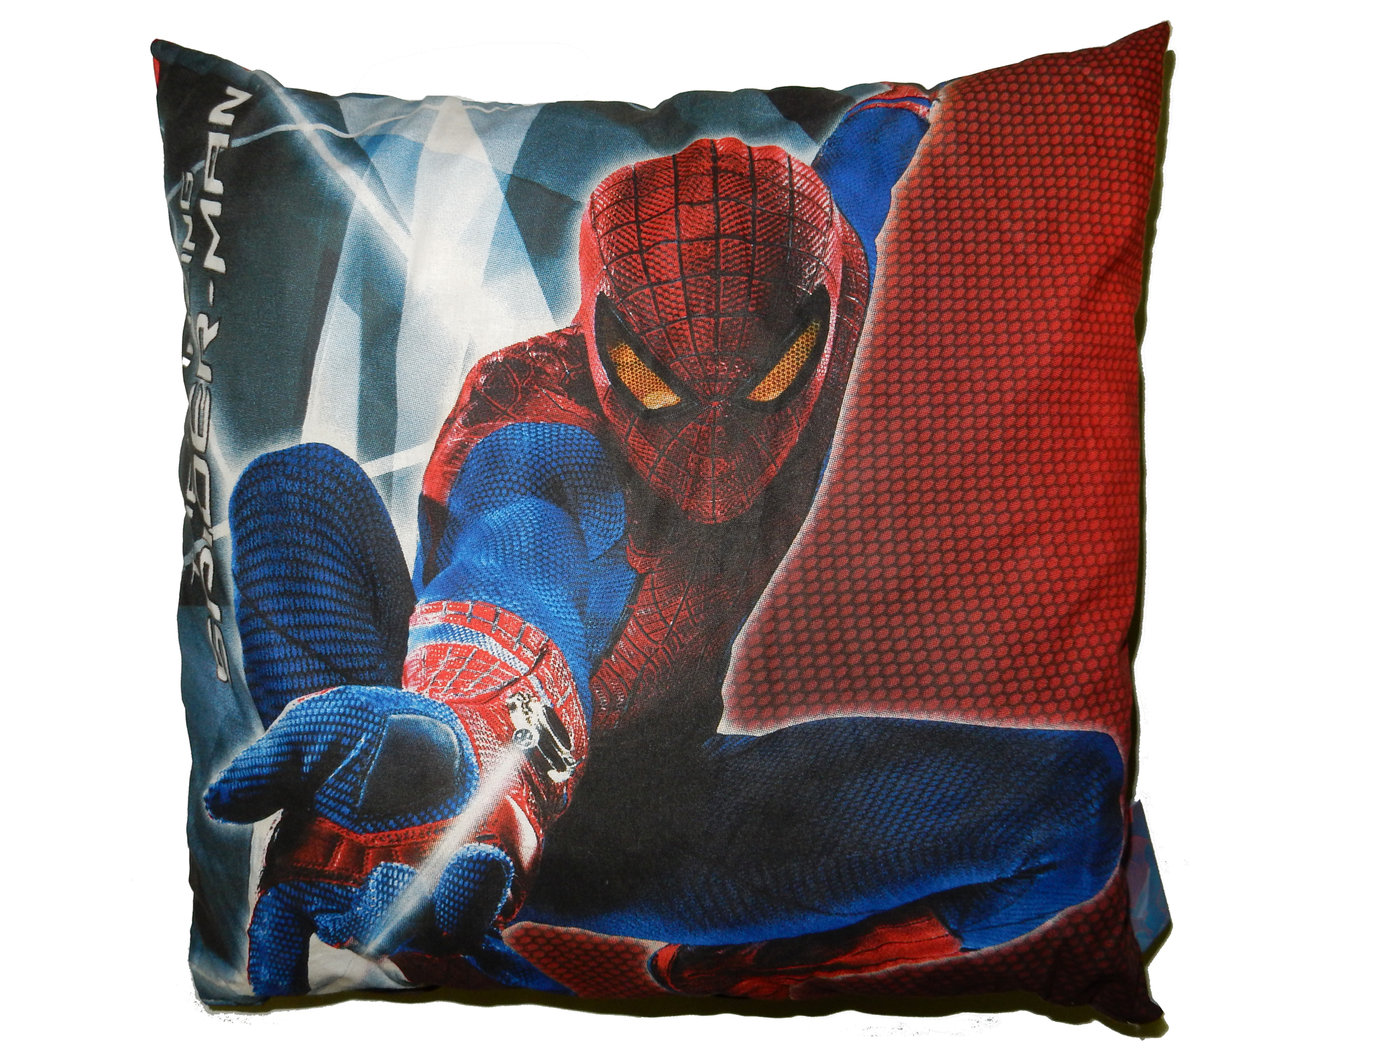 deko kissen 35x35cm spiderman mit 2 motiven kinderzimmer kinder hk1455281 spielwaren express. Black Bedroom Furniture Sets. Home Design Ideas